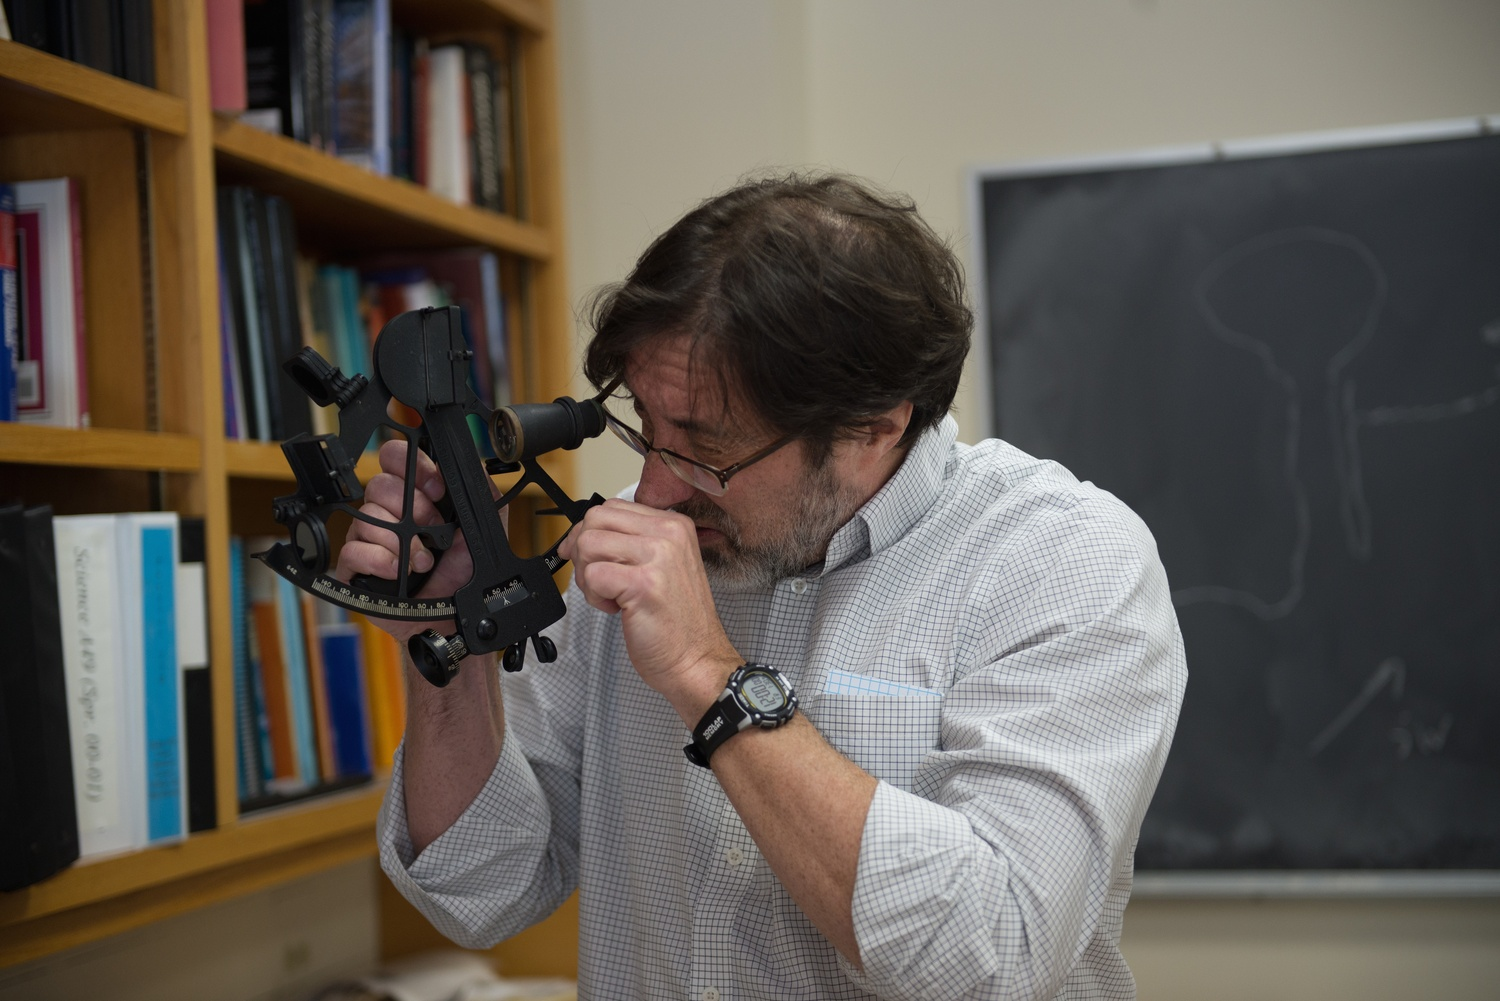 John Huth Demonsrates how to use a sextant.